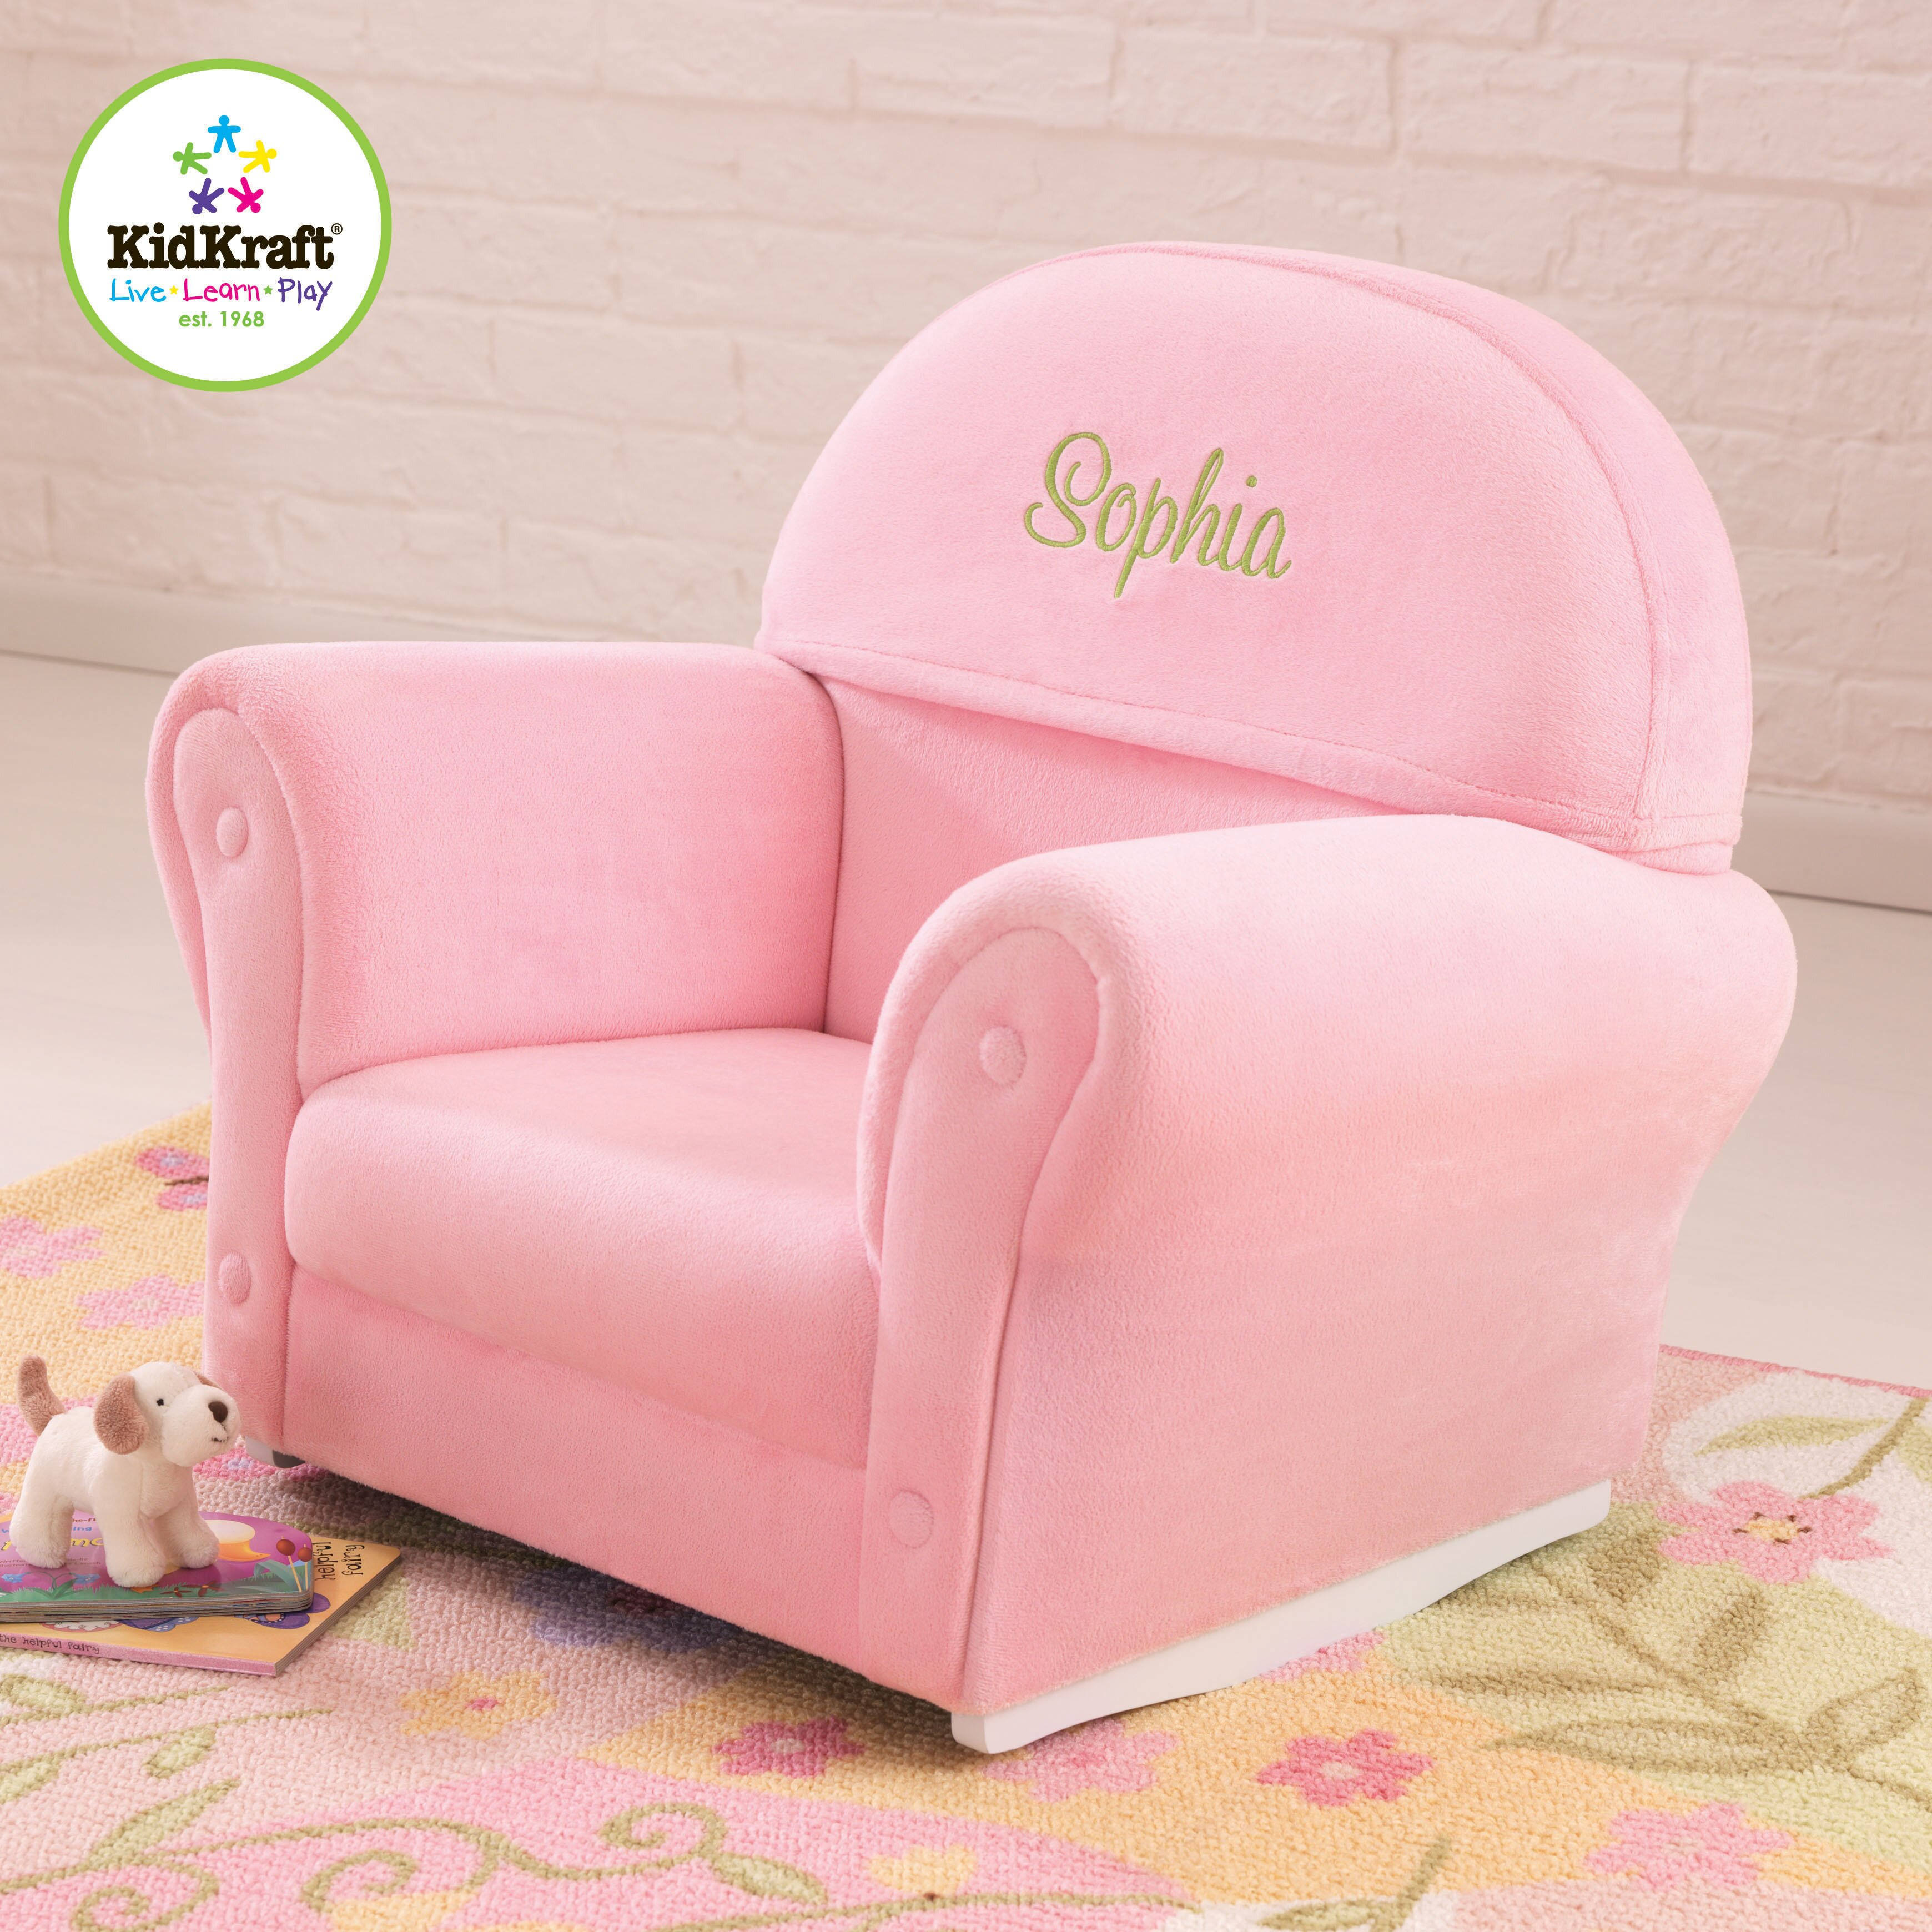 Personalized Kids Rocking Chairs Concept Home & Interior Design